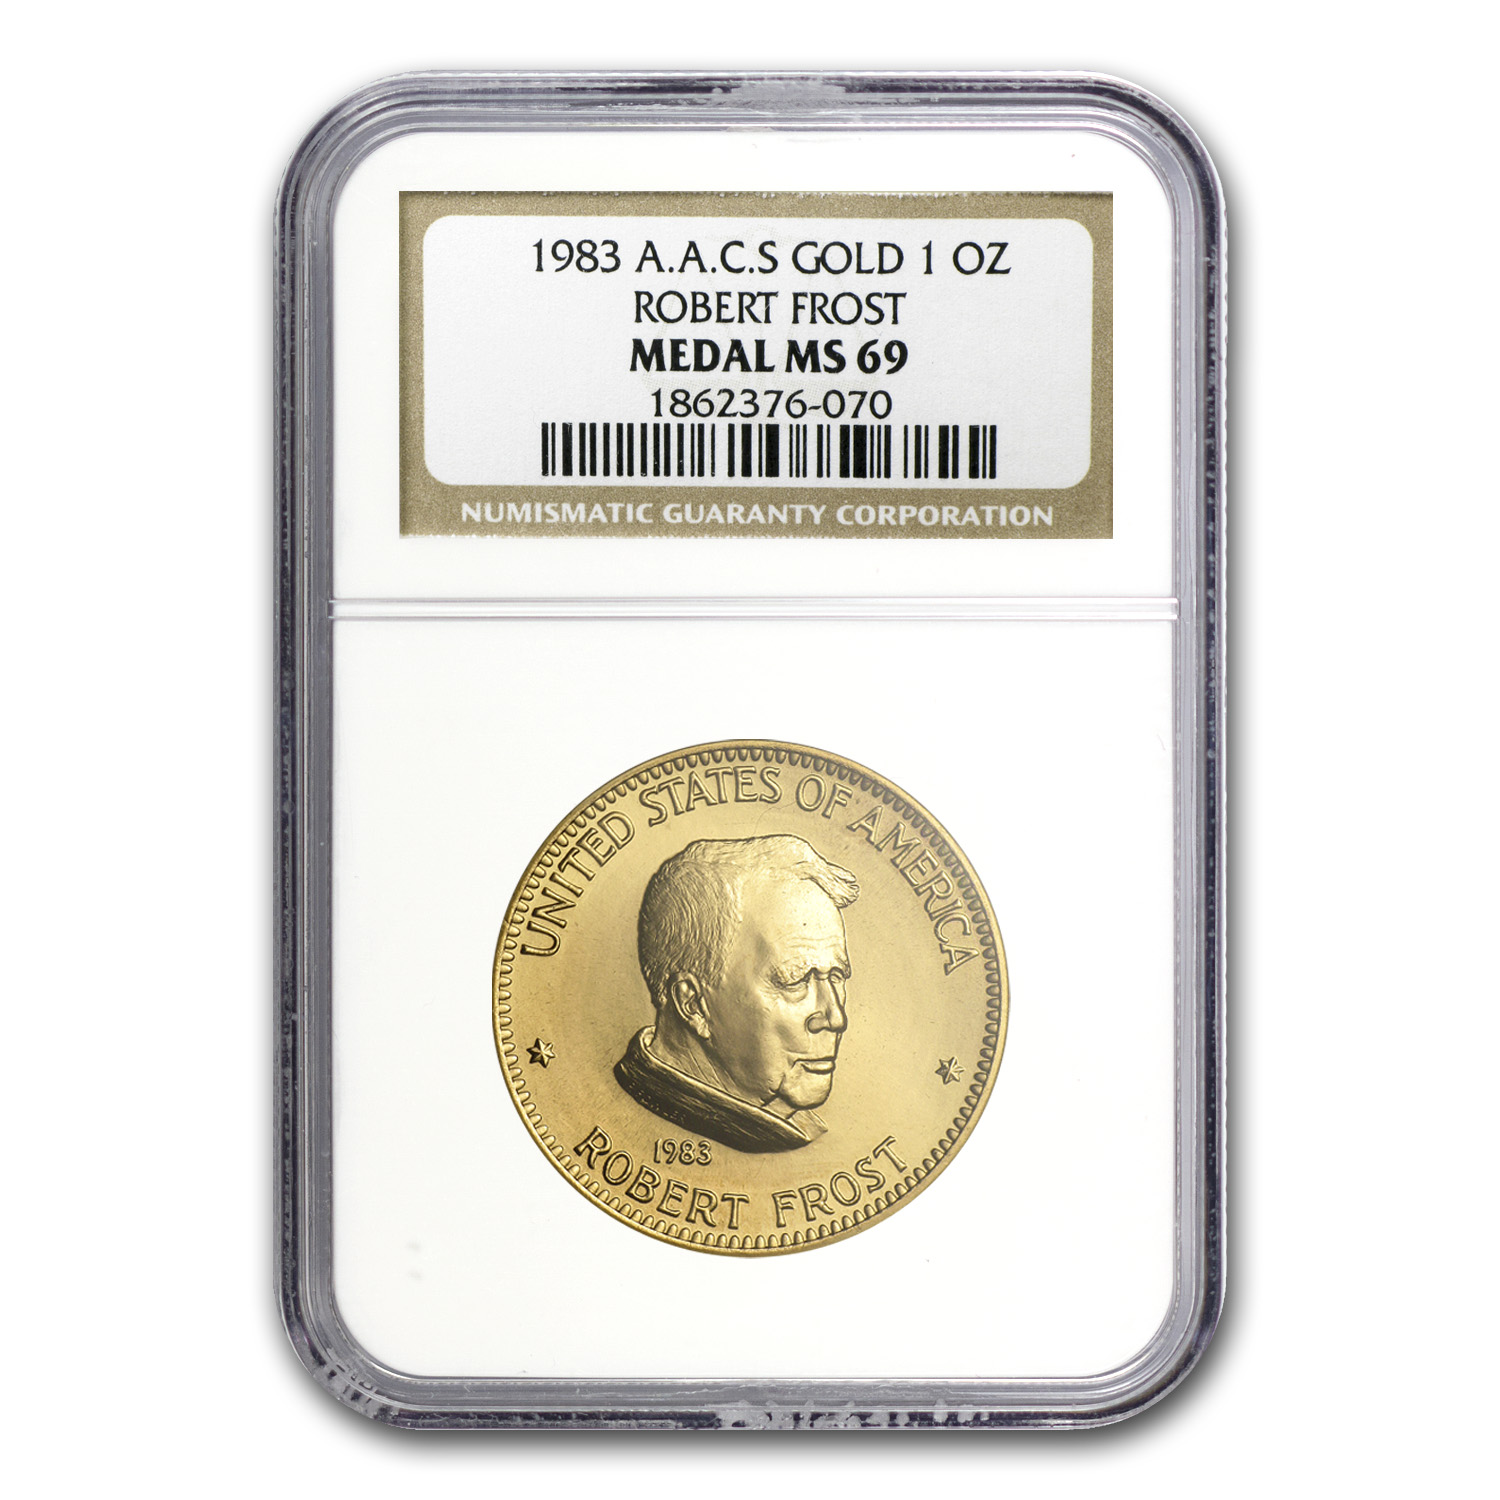 U.S. Mint 1 oz Gold Commem Arts Medal Robert Frost MS-69 NGC